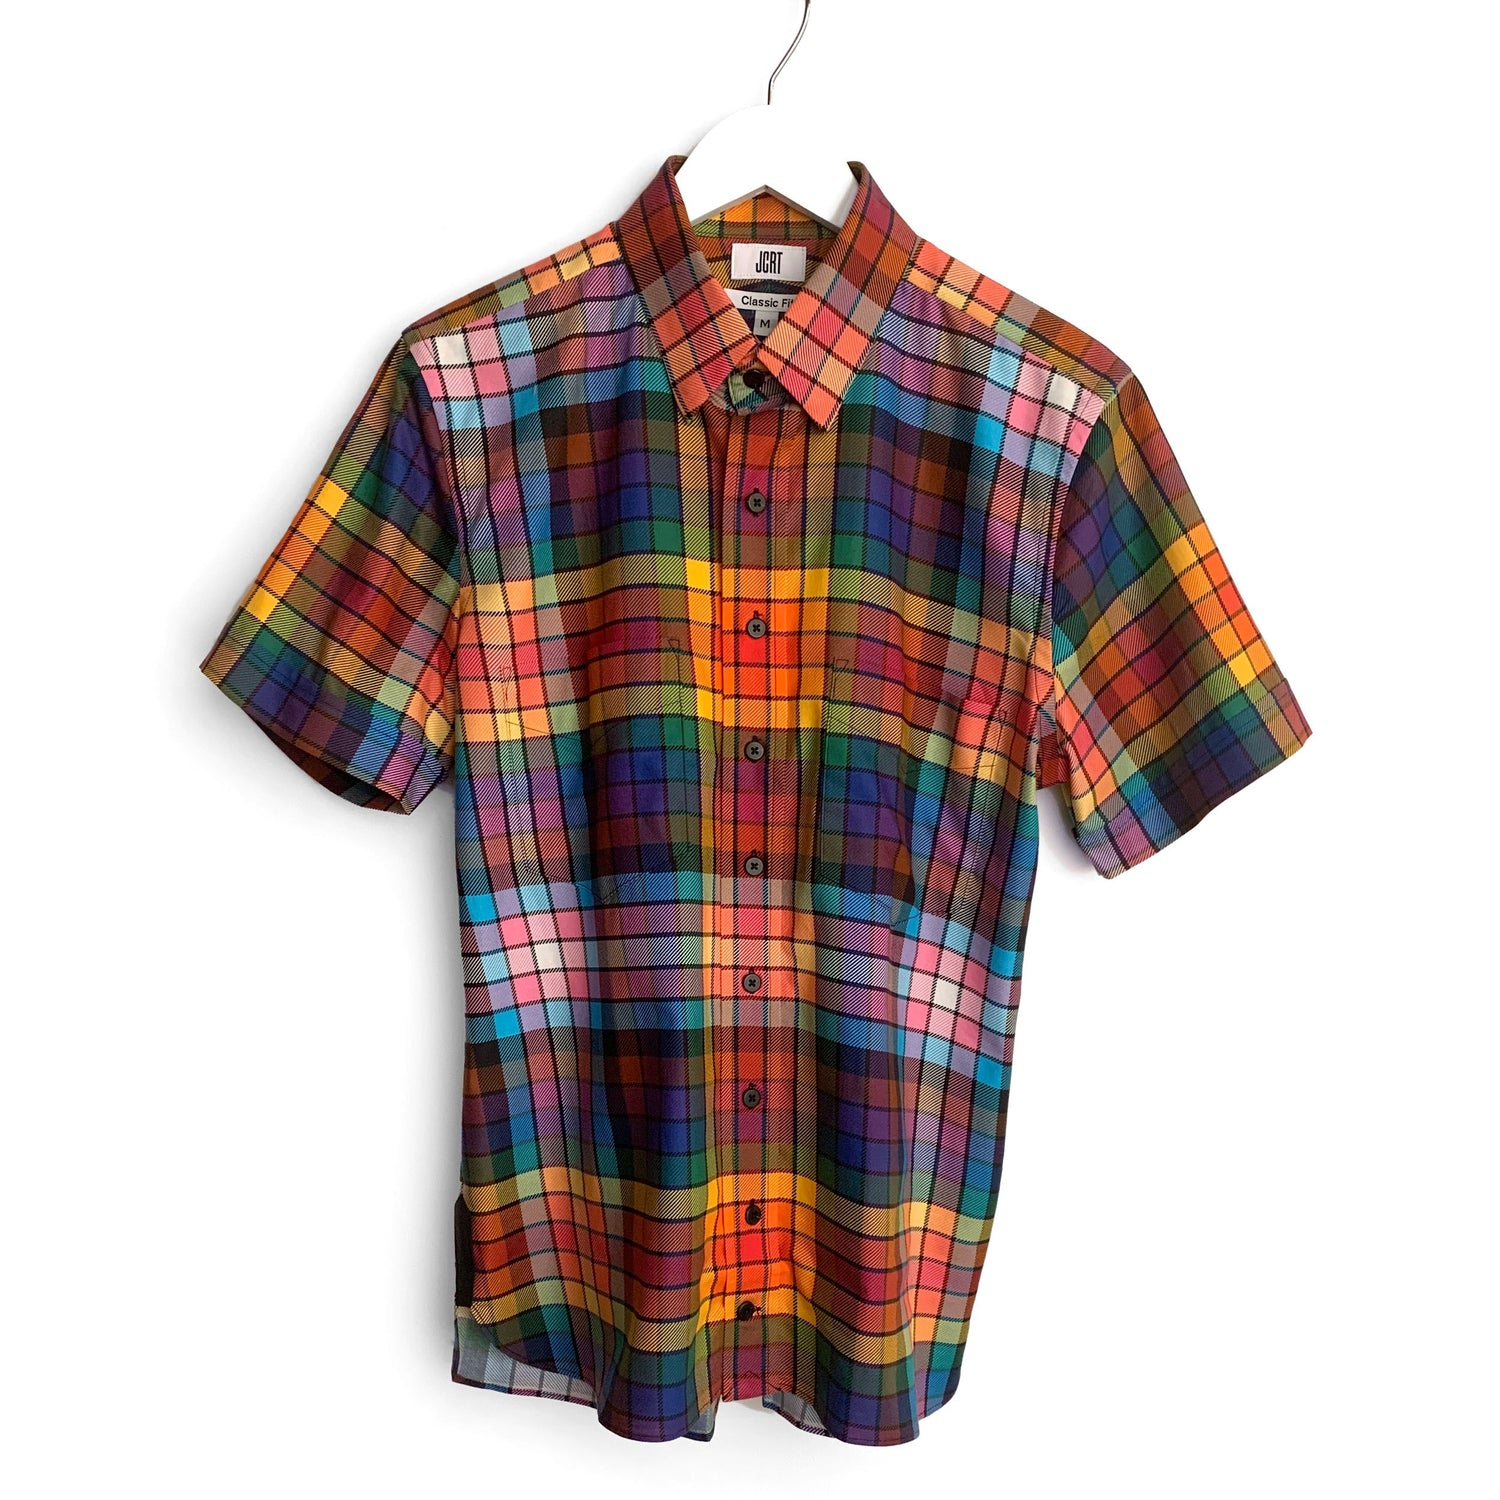 The Pride Plaid Short Sleeve Shirt